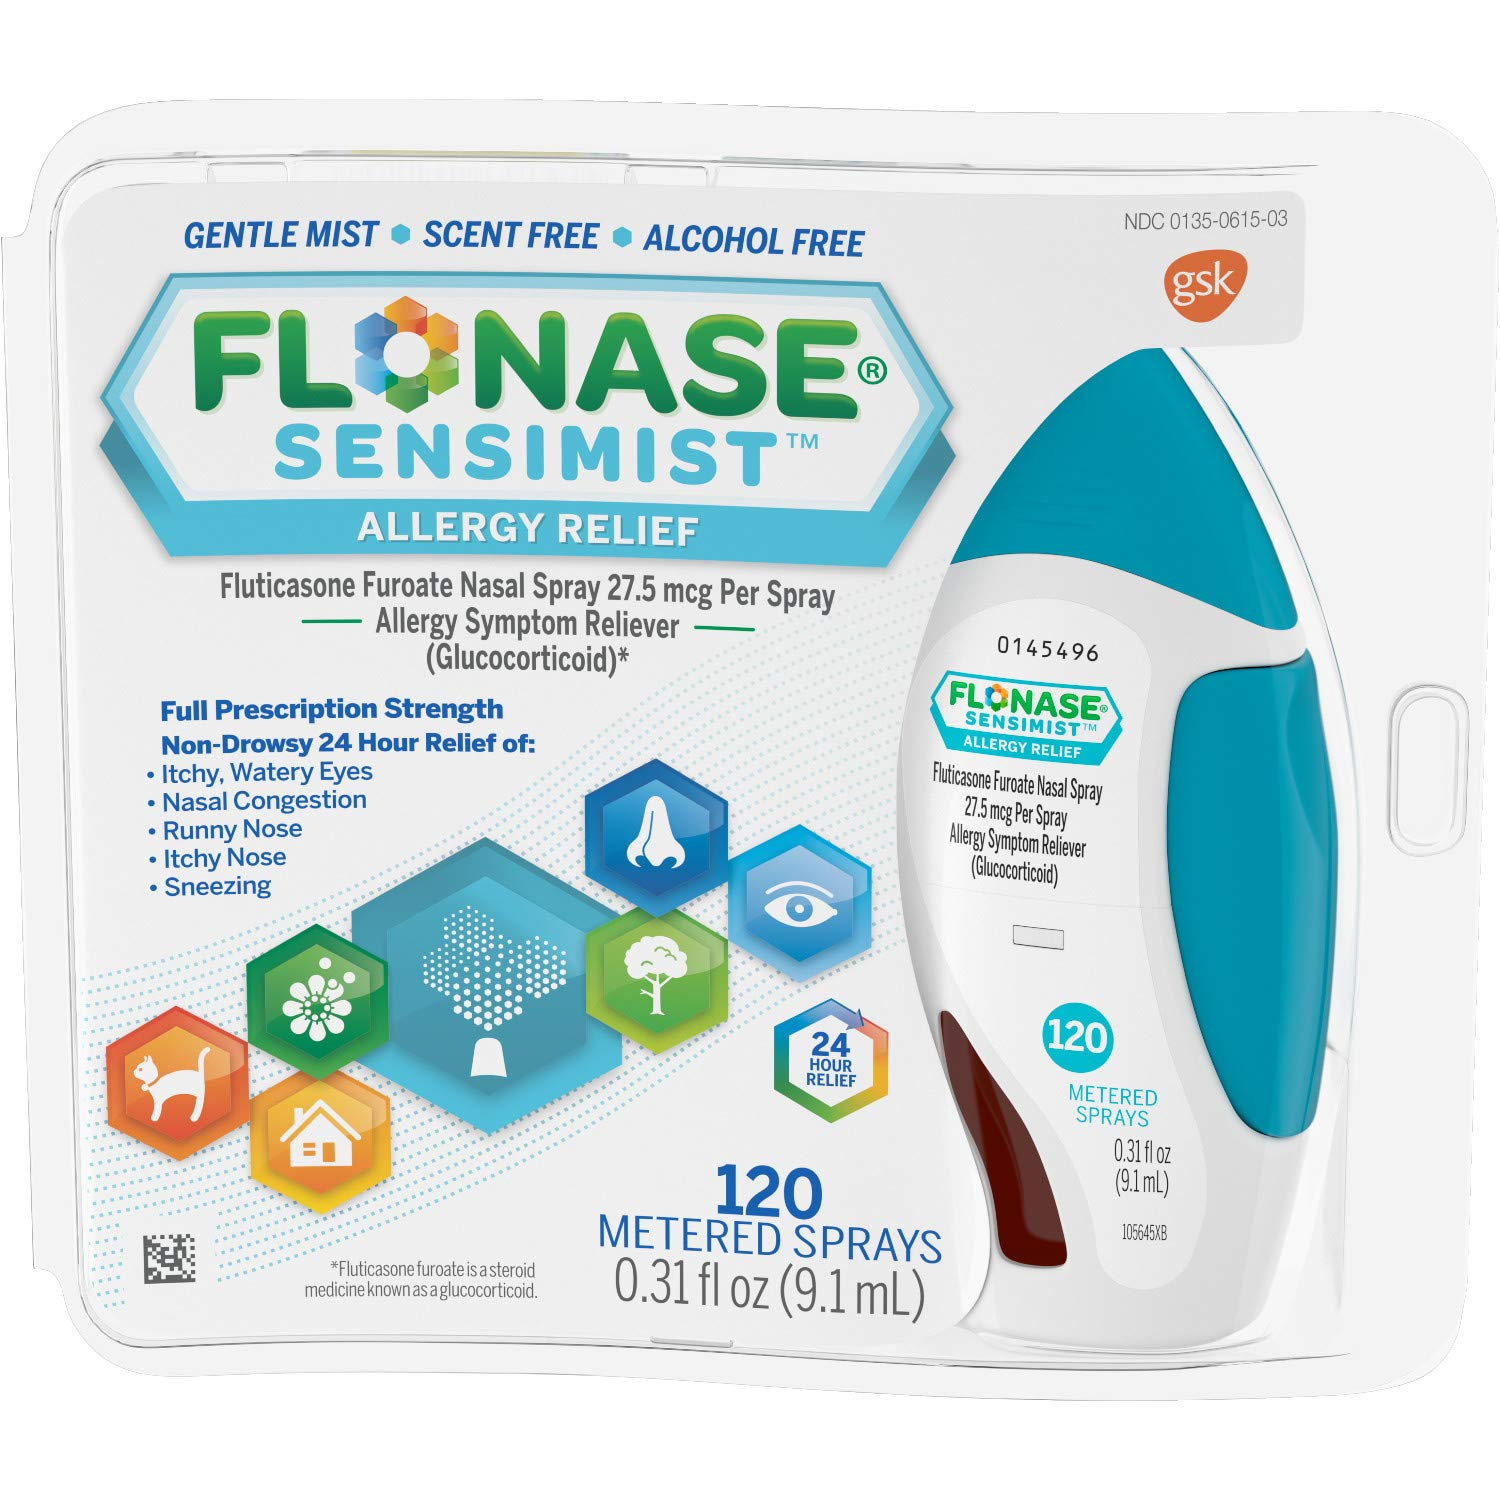 Flonase Sensimist Nasal Spray for Allergy Relief, 24-Hour Non-Drowsy Allergy Medicine, 120 Sprays by Flonase